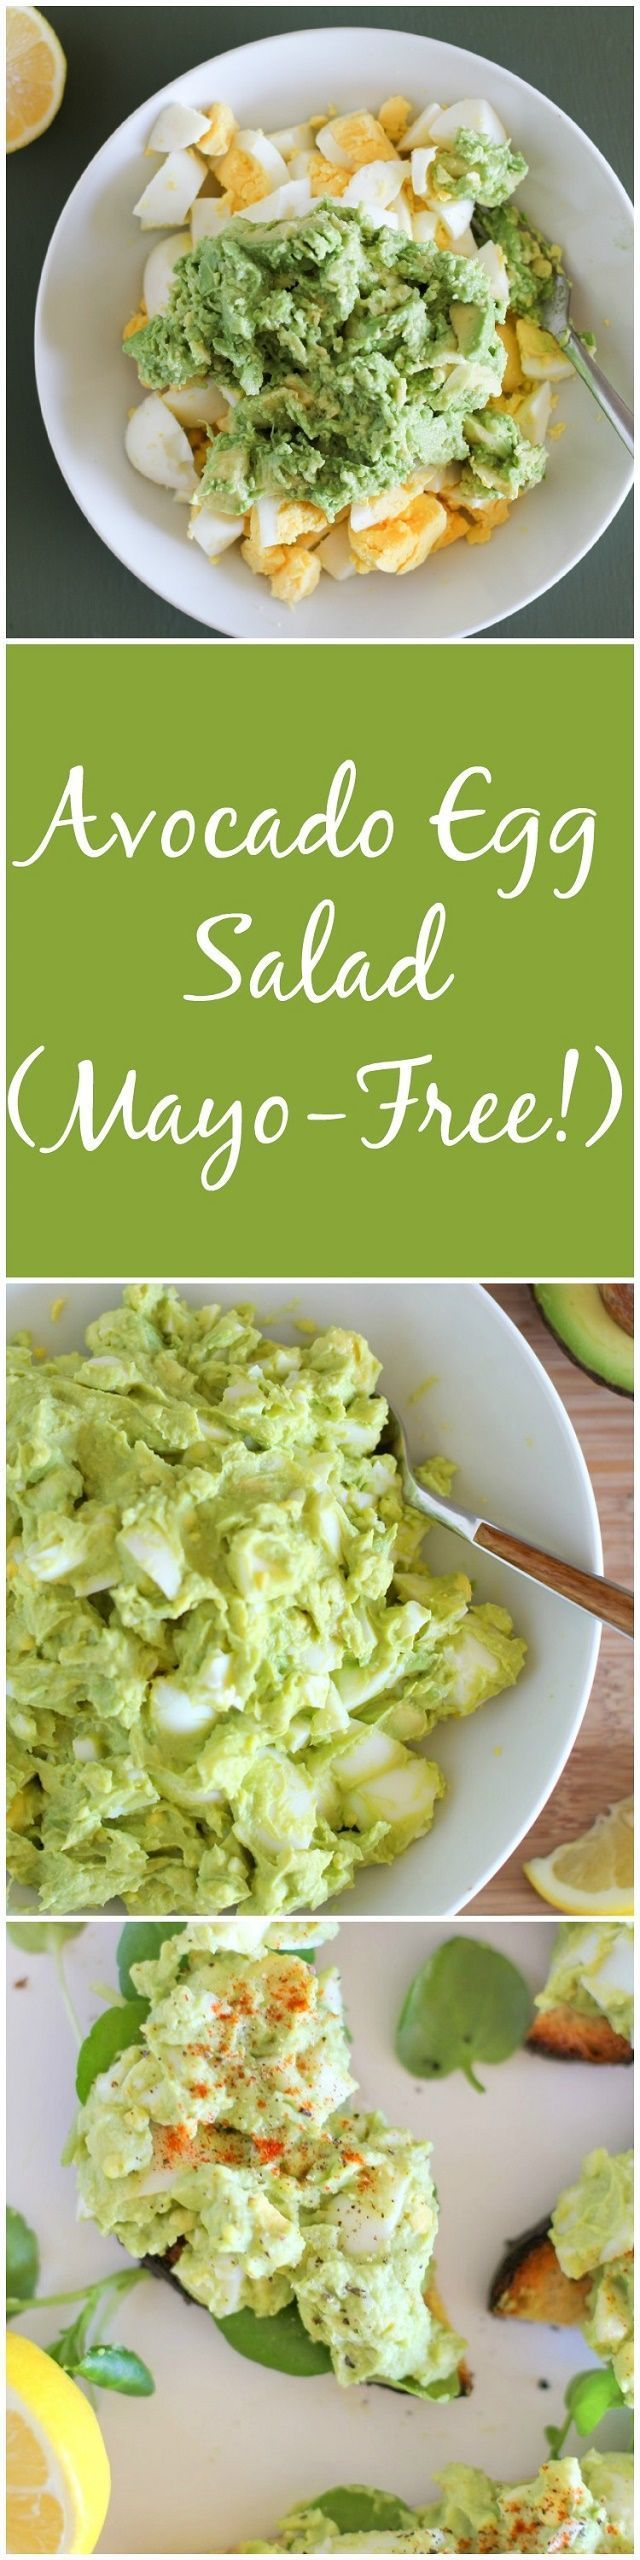 Avocado Egg Salad (Mayo-Free!)  - an easy 4-ingredient lunch recipe…